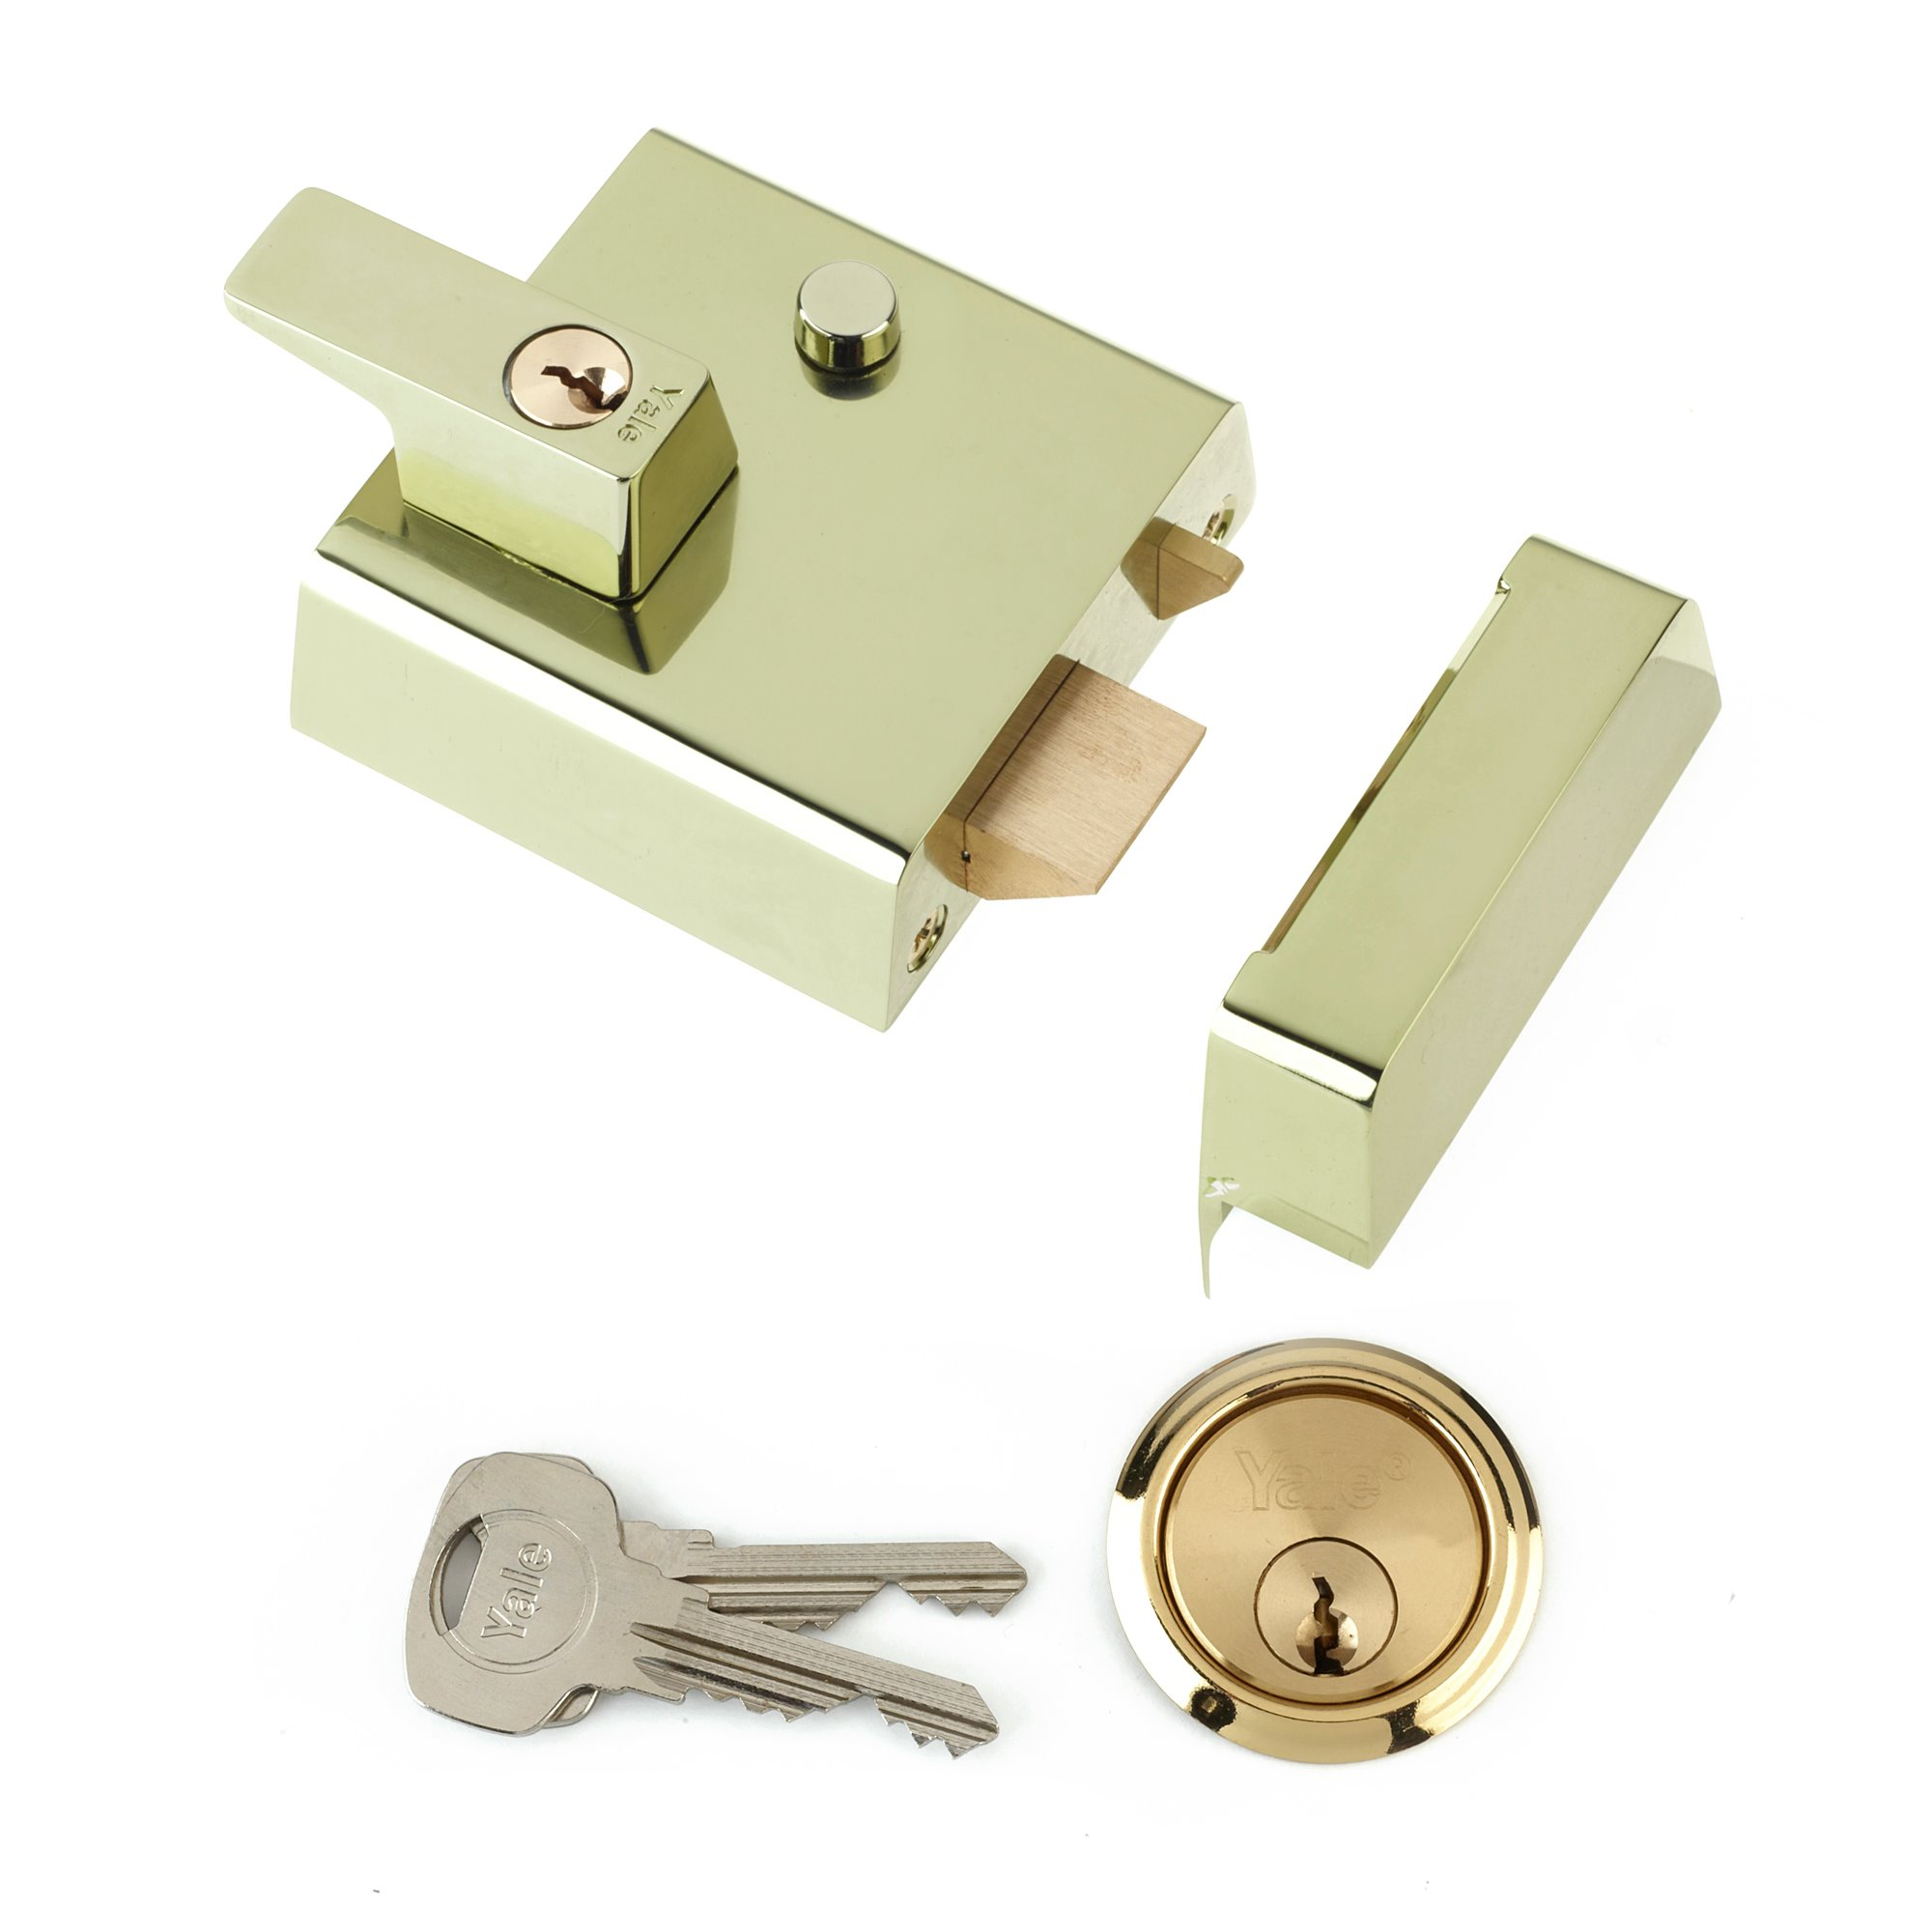 P1 / P2 Double Locking Nightlatch